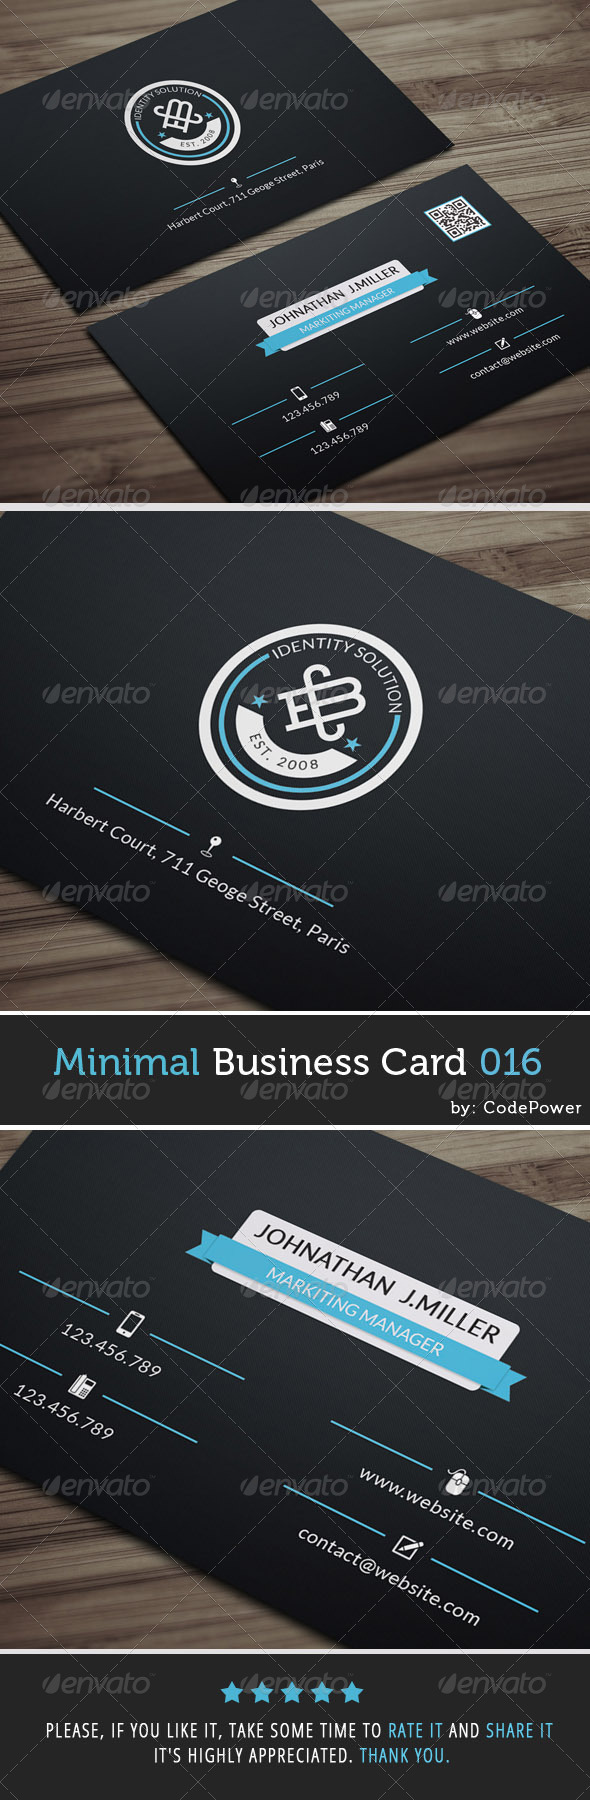 GraphicRiver Minimal Business Card 016 7462681